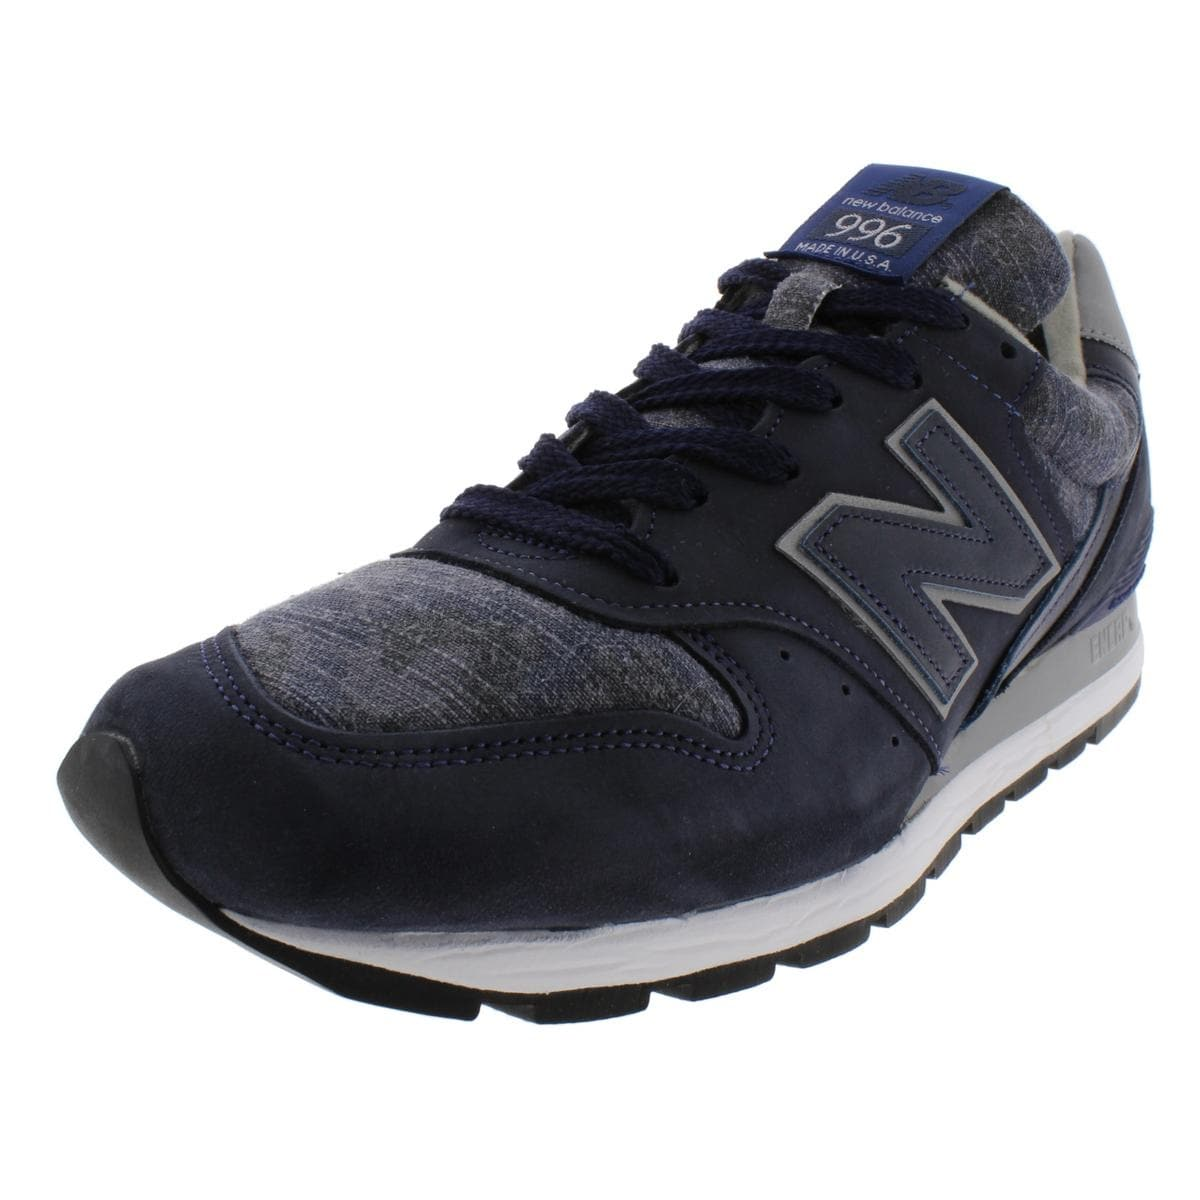 ee04d07f88444 Shop New Balance Mens 996 Athletic Shoes Running Camouflage - 9 Medium (D)  - Free Shipping Today - Overstock - 28034720